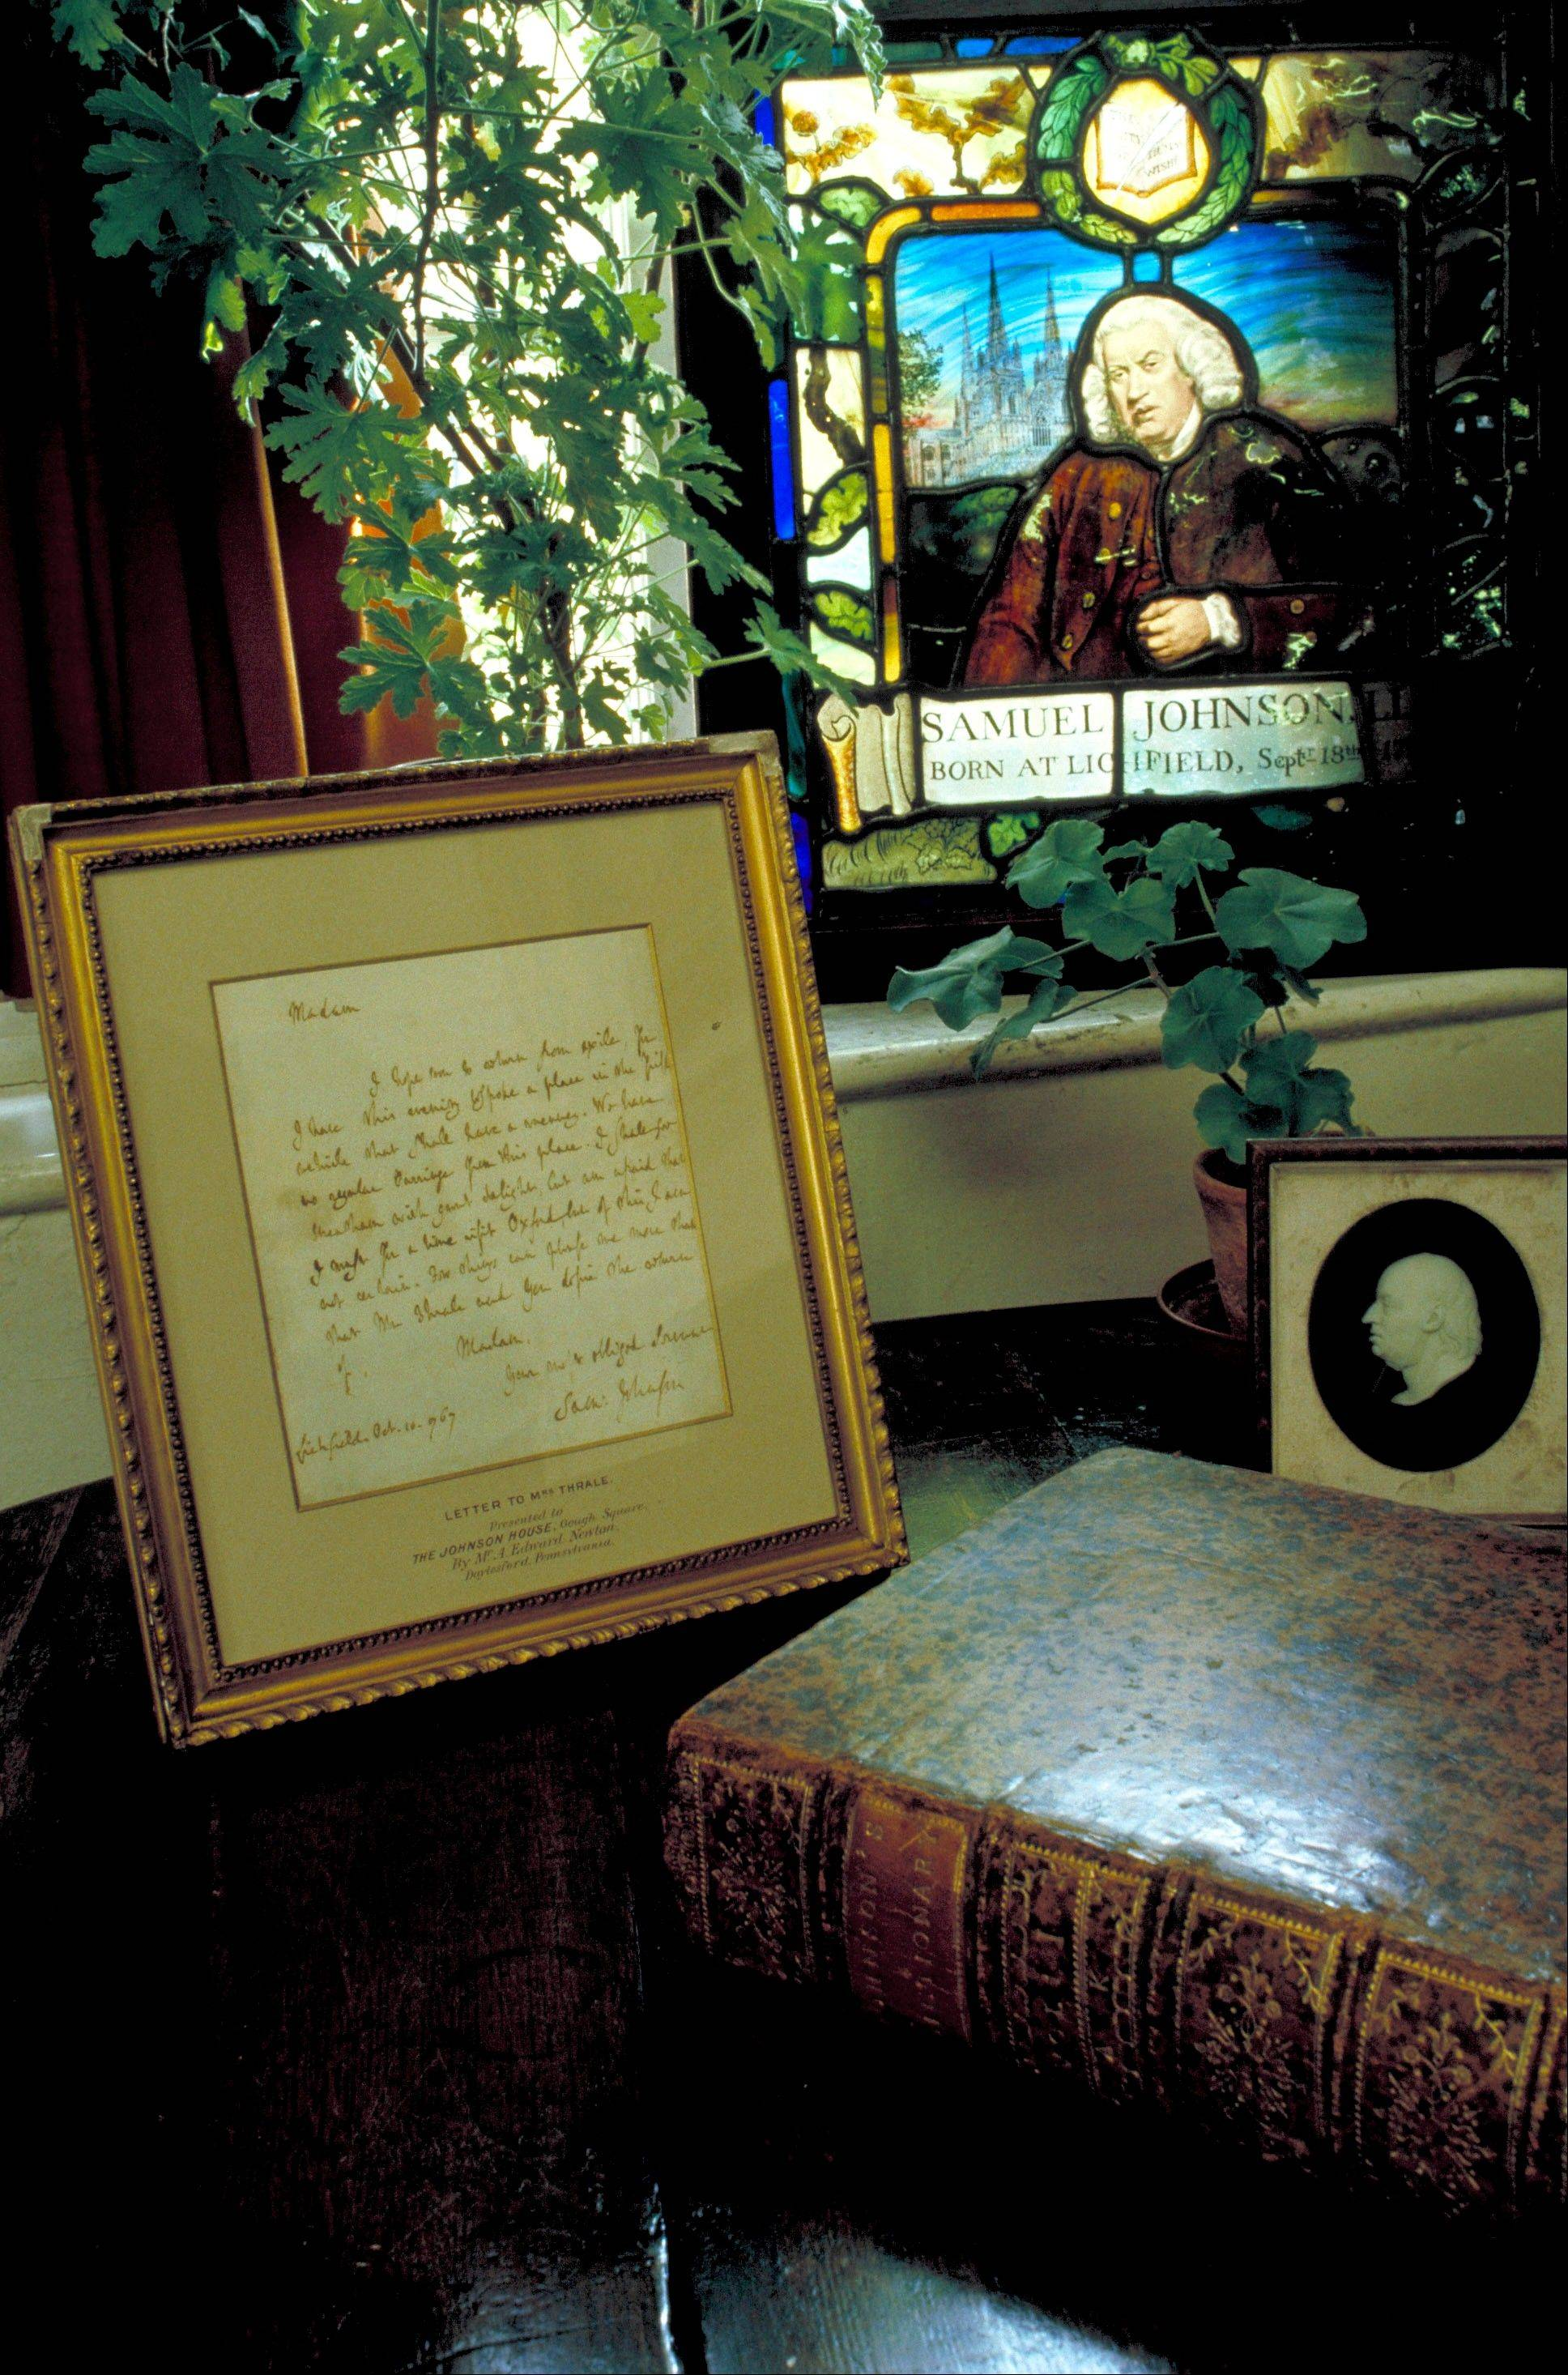 A letter written by Samuel Johnson and a copy of the dictionary he wrote, which was published in 1755, are kept beneath a stained glass plaque at Dr. Johnson's House, a small museum in the 300-year-old townhouse where he lived in London.